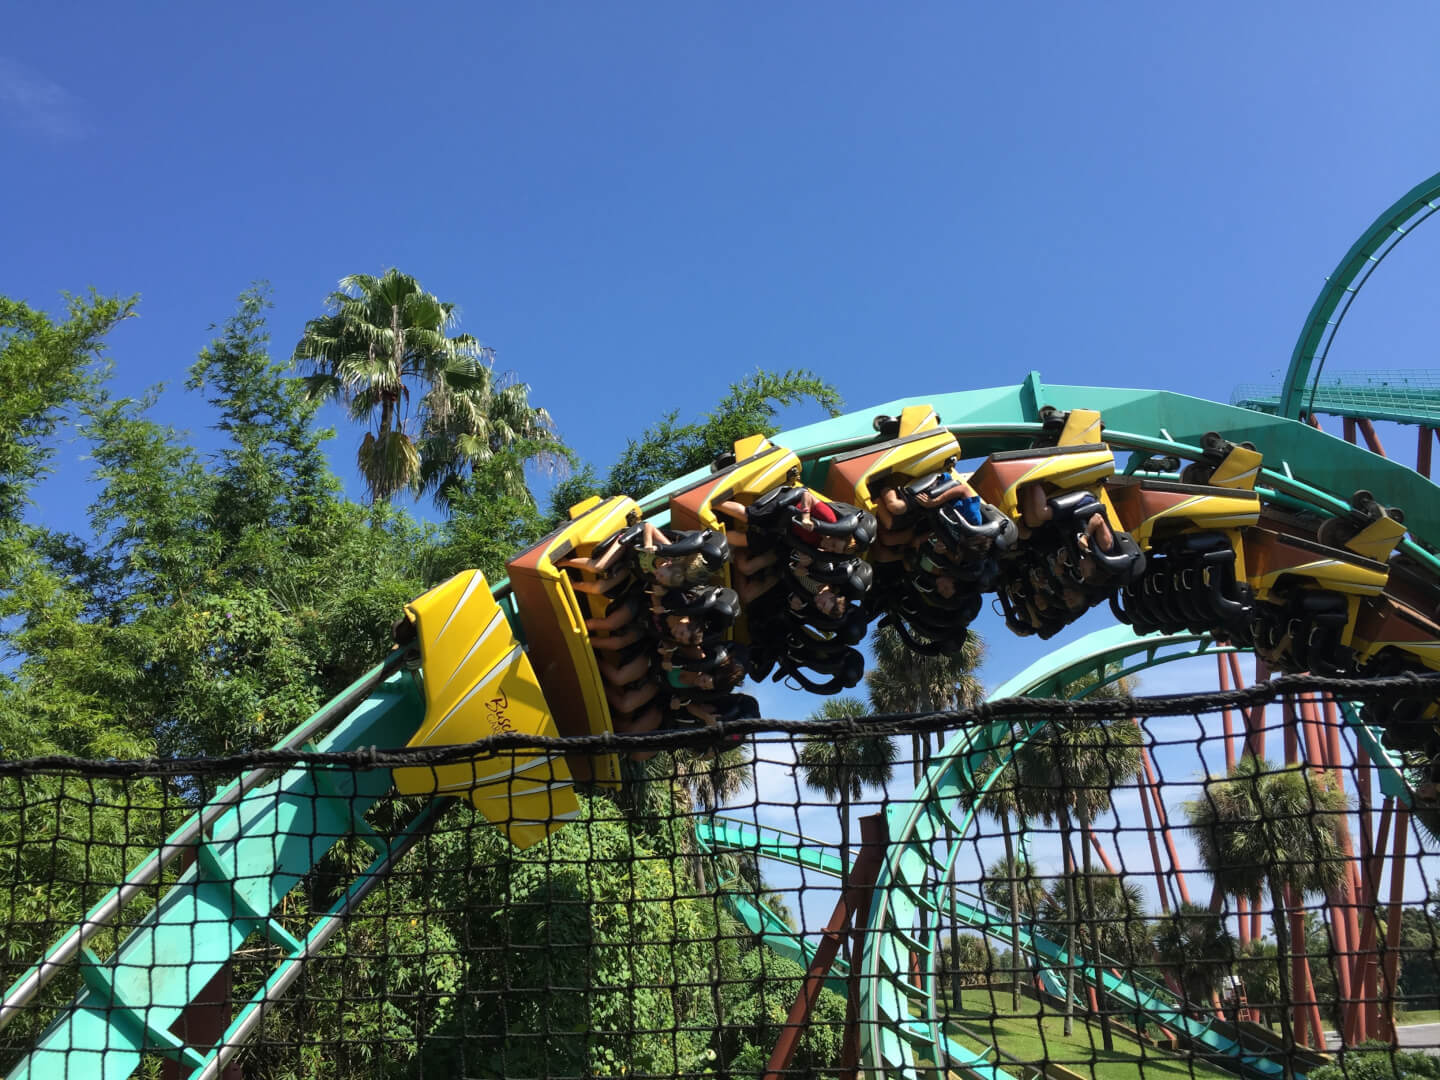 Tour Guide Tuesday Head To Busch Gardens For Some Bigger